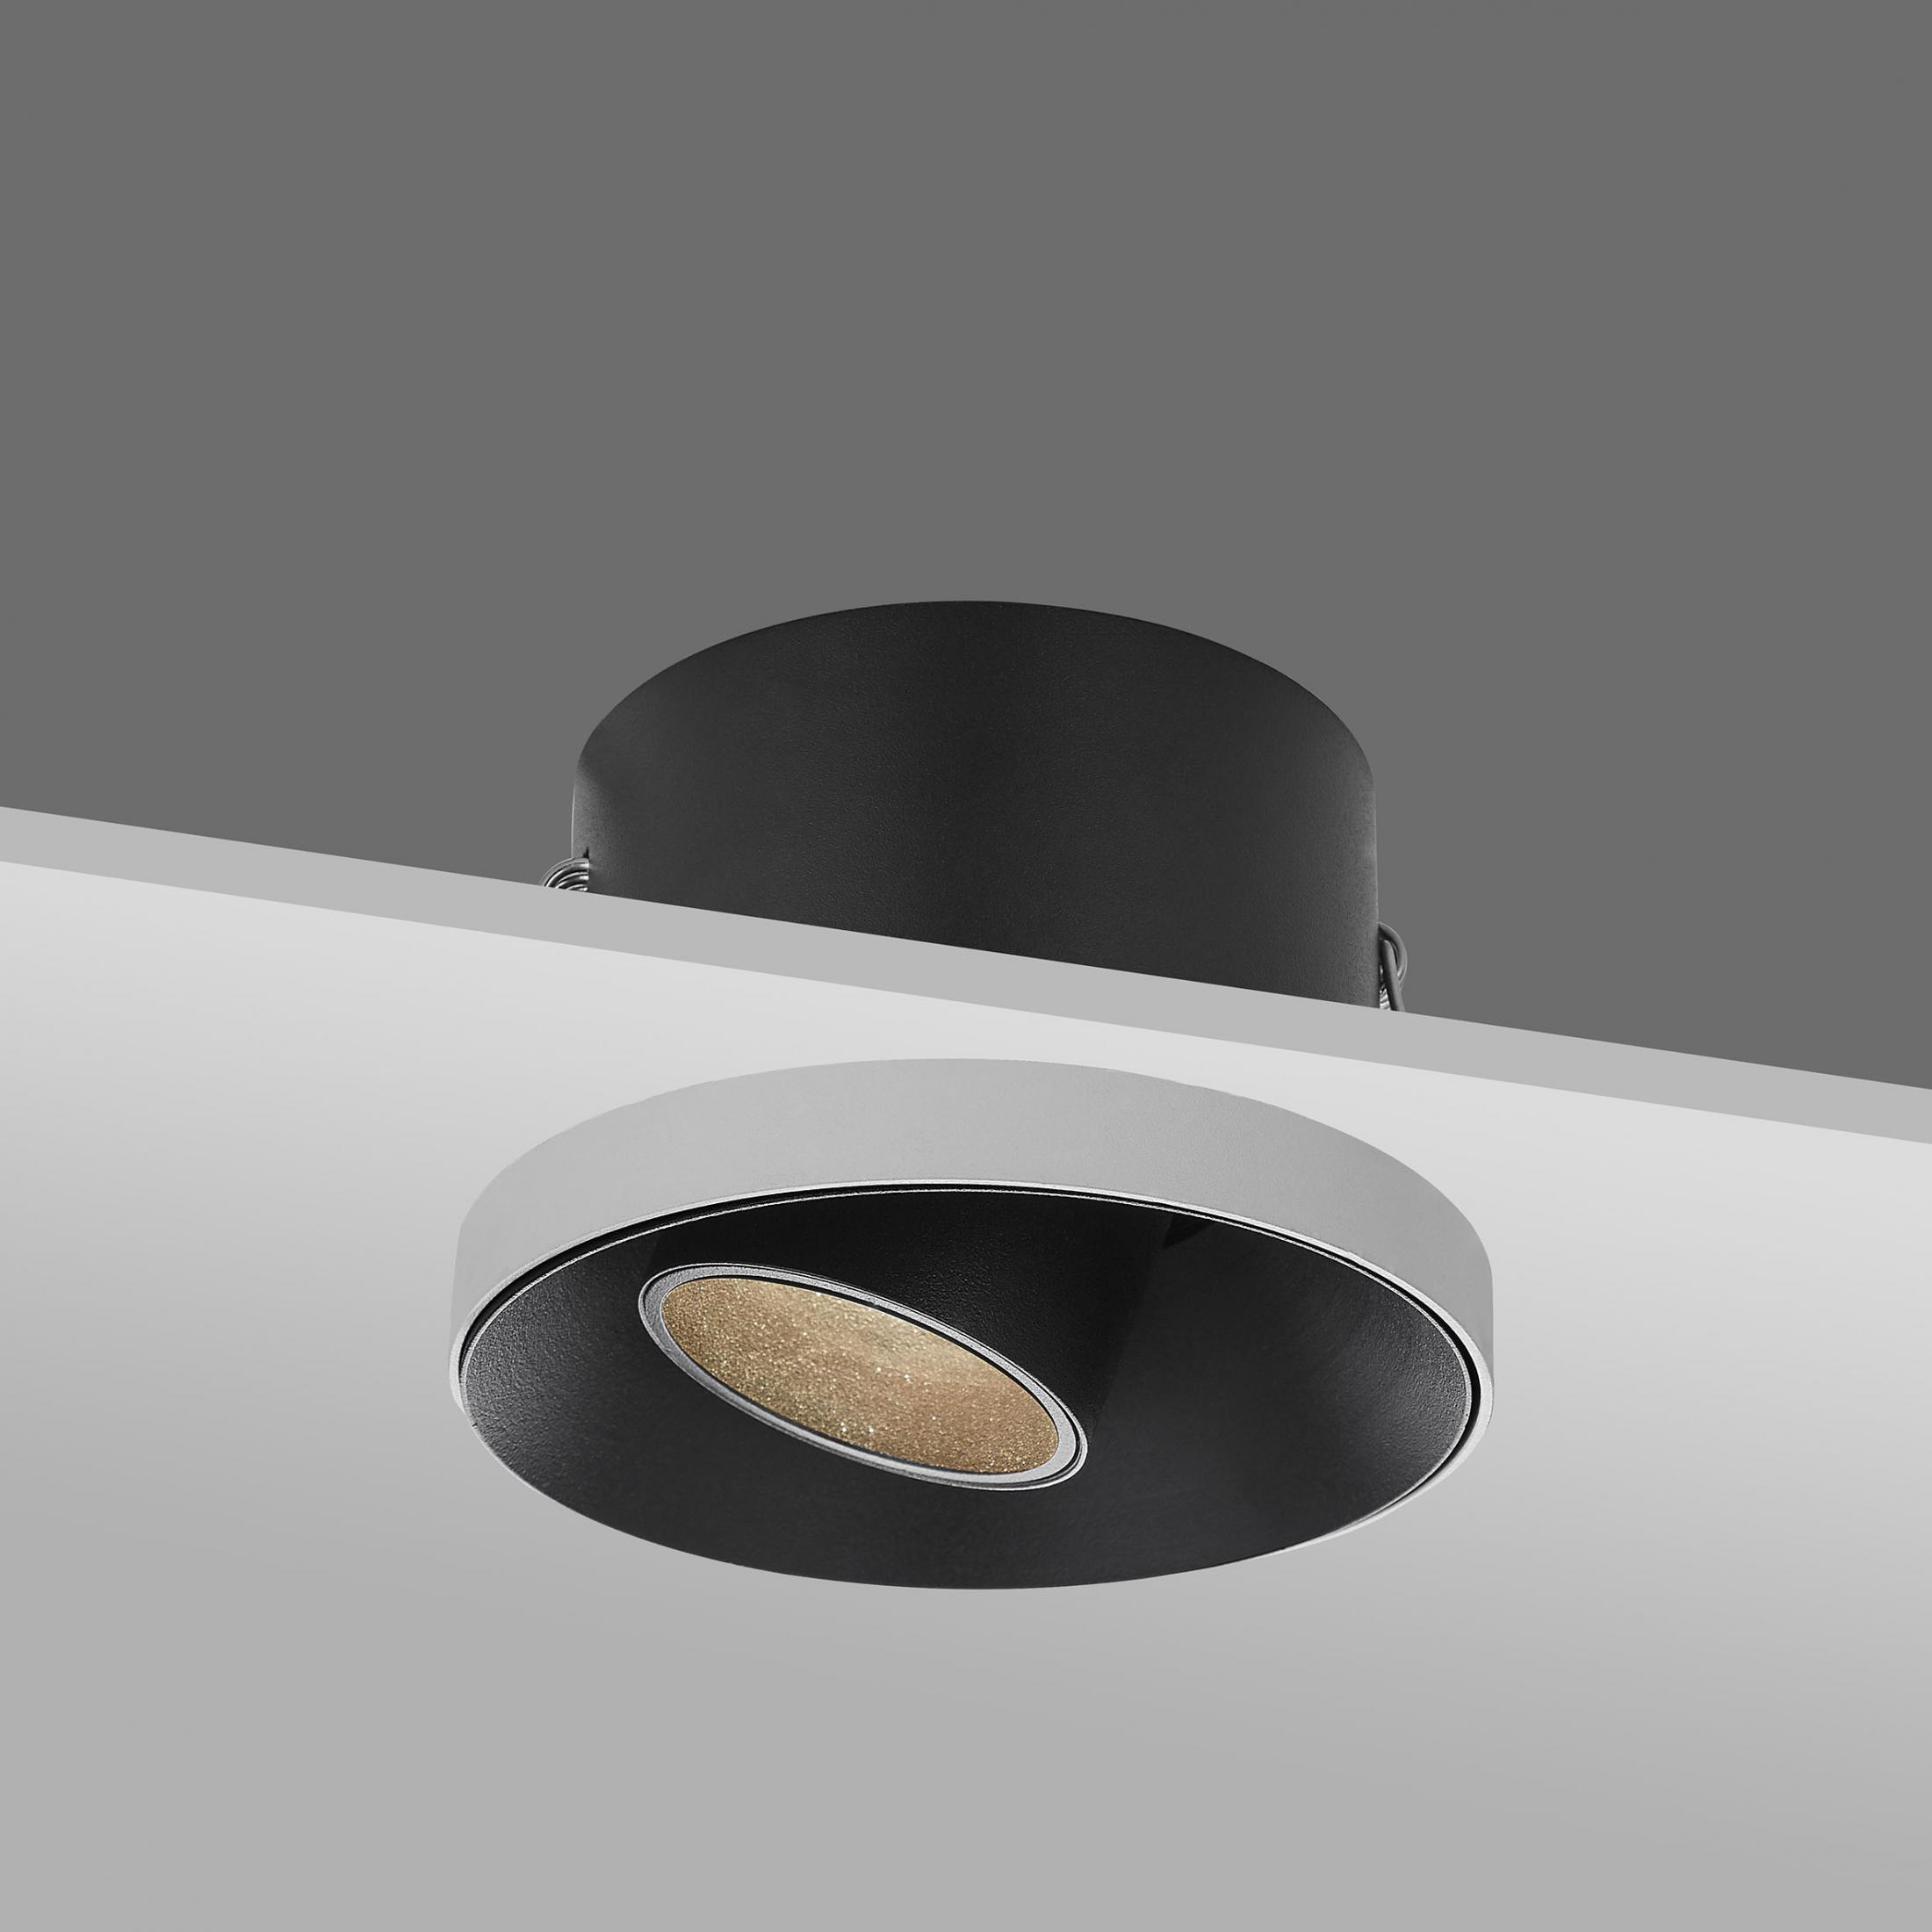 7W adjustable recessed downlight